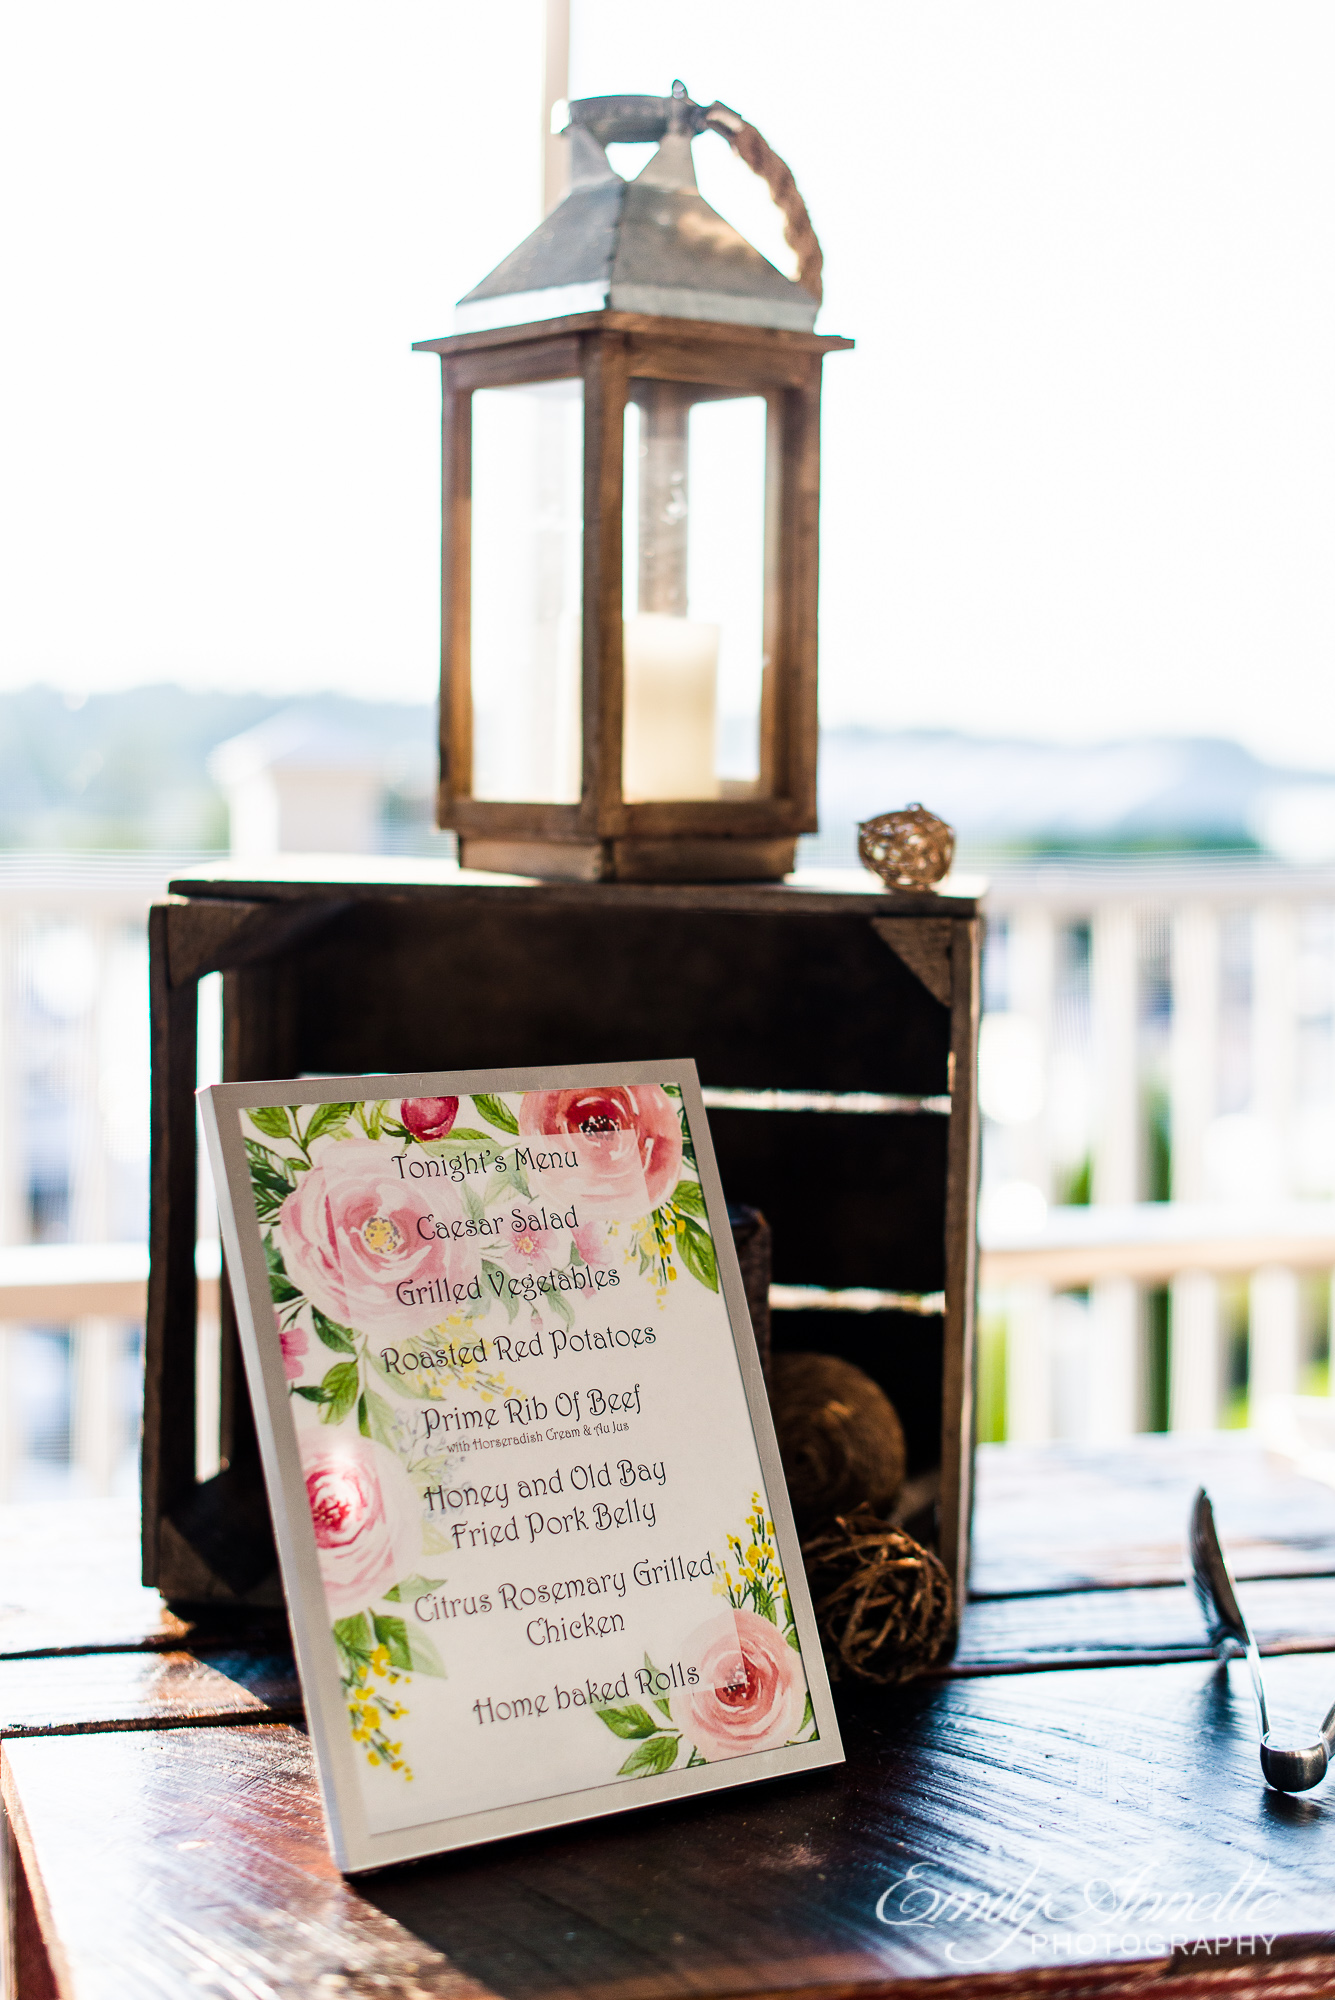 Decorations including a lantern and floral menu at the buffet bar for a wedding reception at Herrington on the Bay in North Beach, Maryland